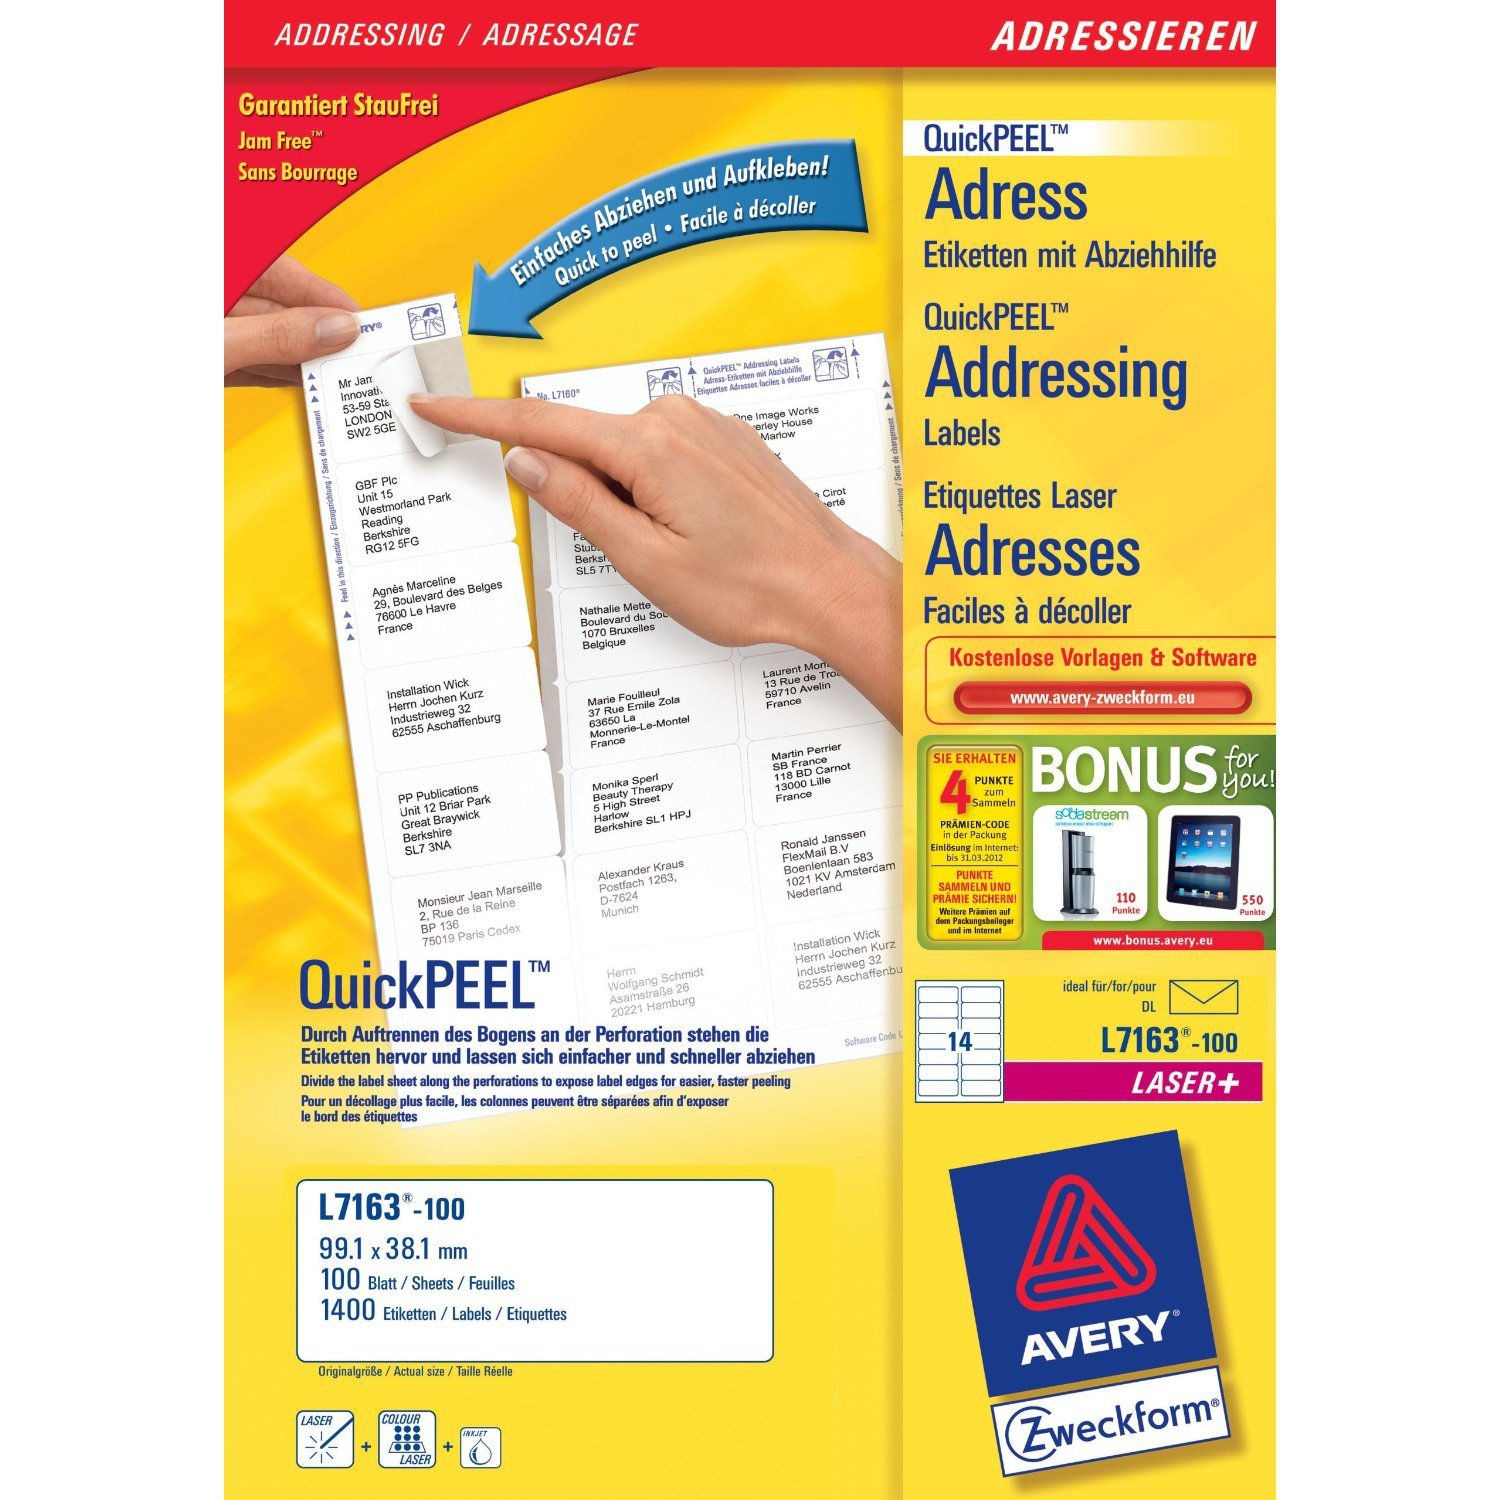 L7163-100 avery Avery Quickpeel Address Label 99x38mm L7163-100 (1400labels) - AD01